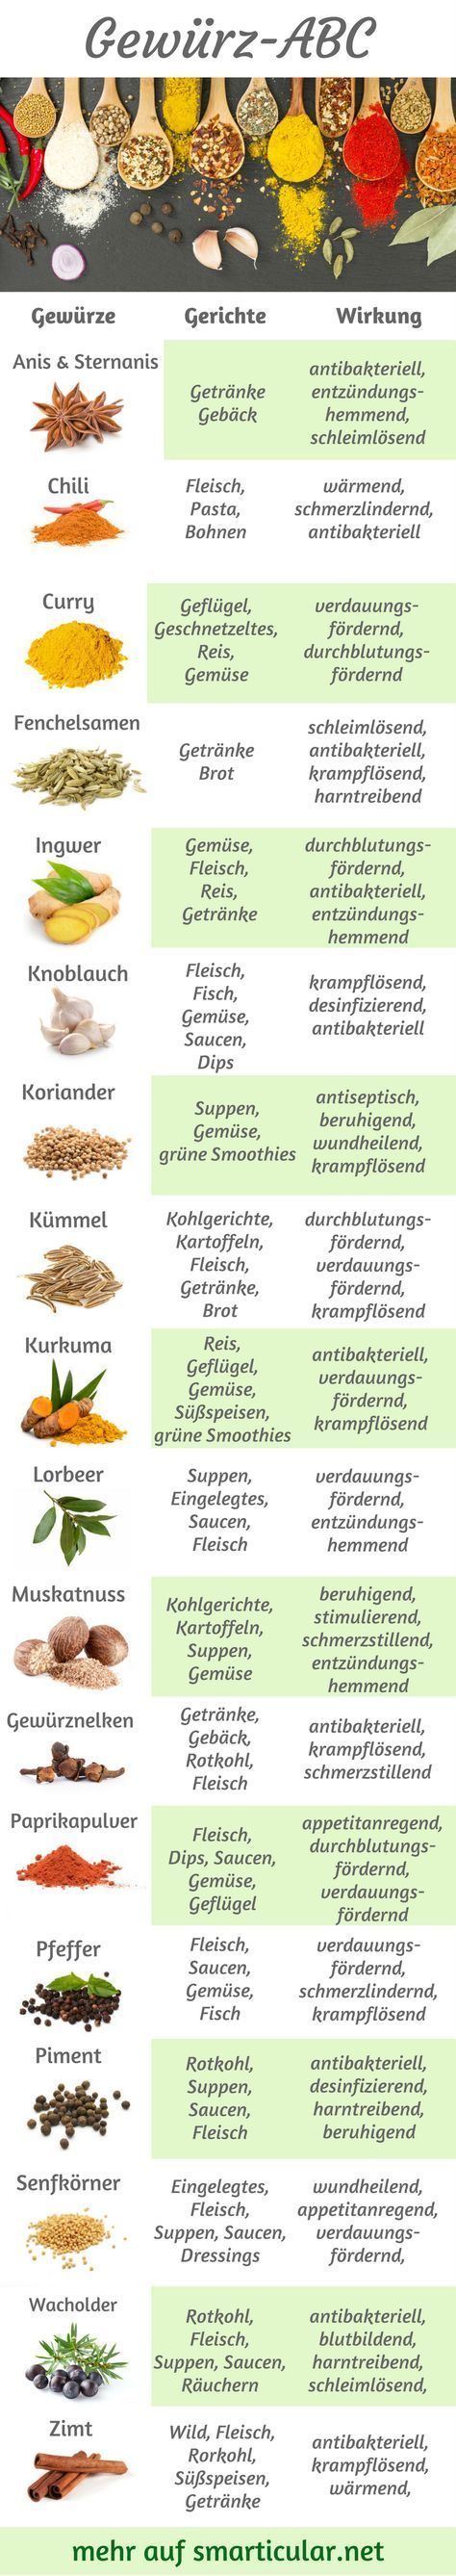 Spice ABC: The right spice for every dish -  So many different spices, but you don't know what you c...